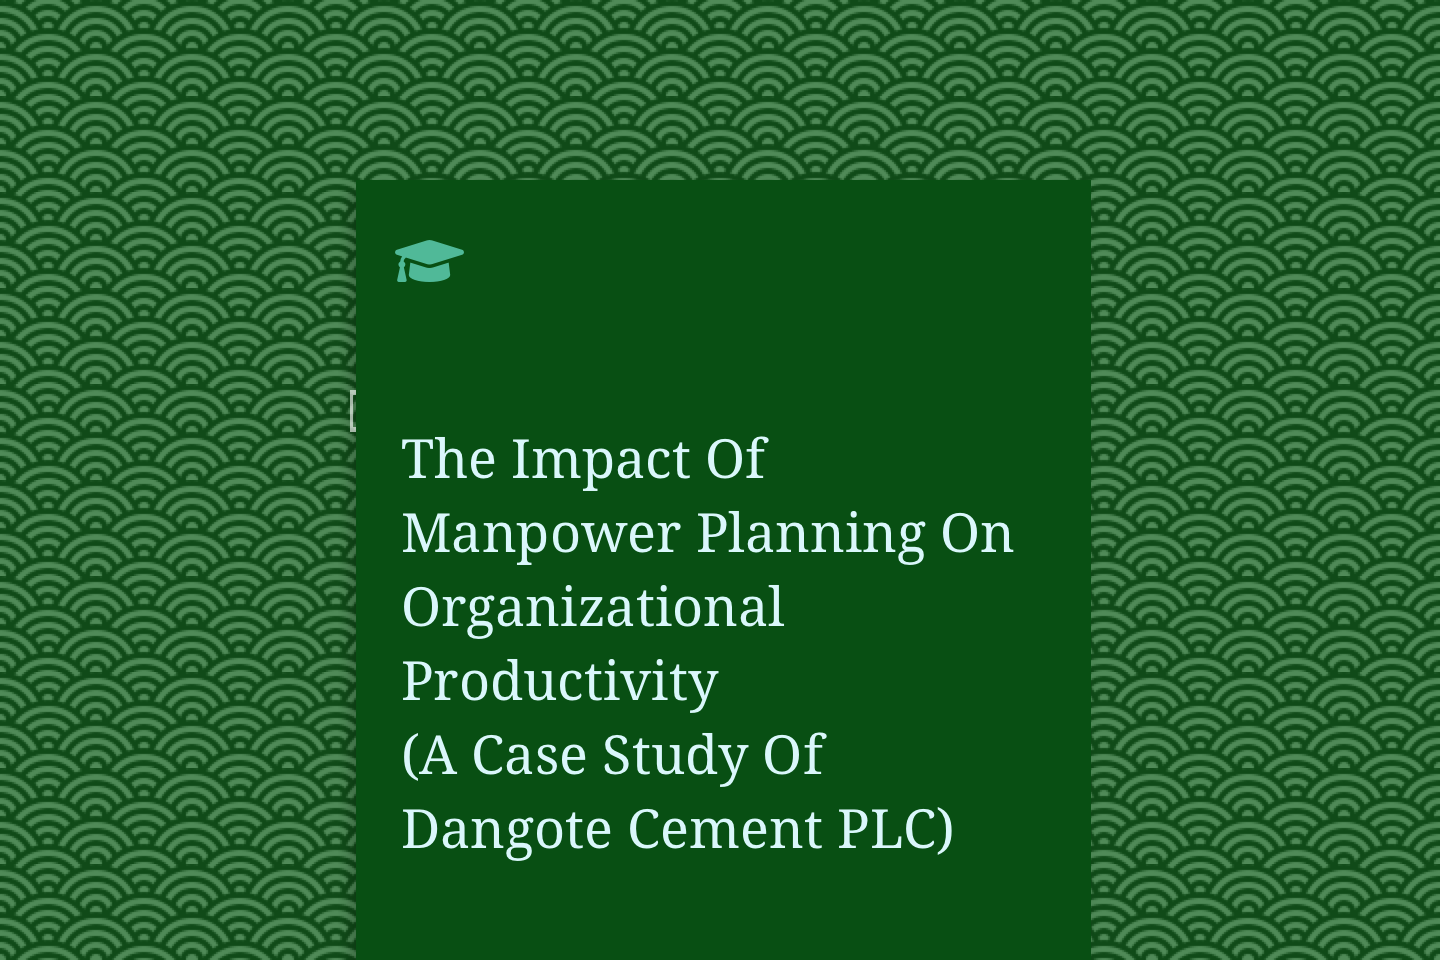 The Impact Of Manpower Planning On Organizational Productivity (A Case Study Of Dangote Cement PLC)